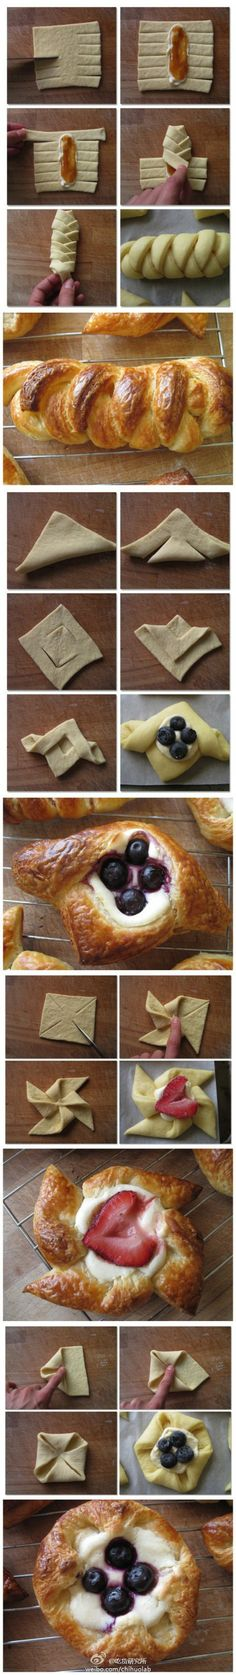 Pastry Folding Hacks Community Post: 40 Creative Food Hacks That Will Change The Way You Cook Fun Desserts, Dessert Recipes, Pastry Recipes, Awesome Desserts, Gourmet Desserts, Fun Recipes, Plated Desserts, Delicious Recipes, Recipe Ideas